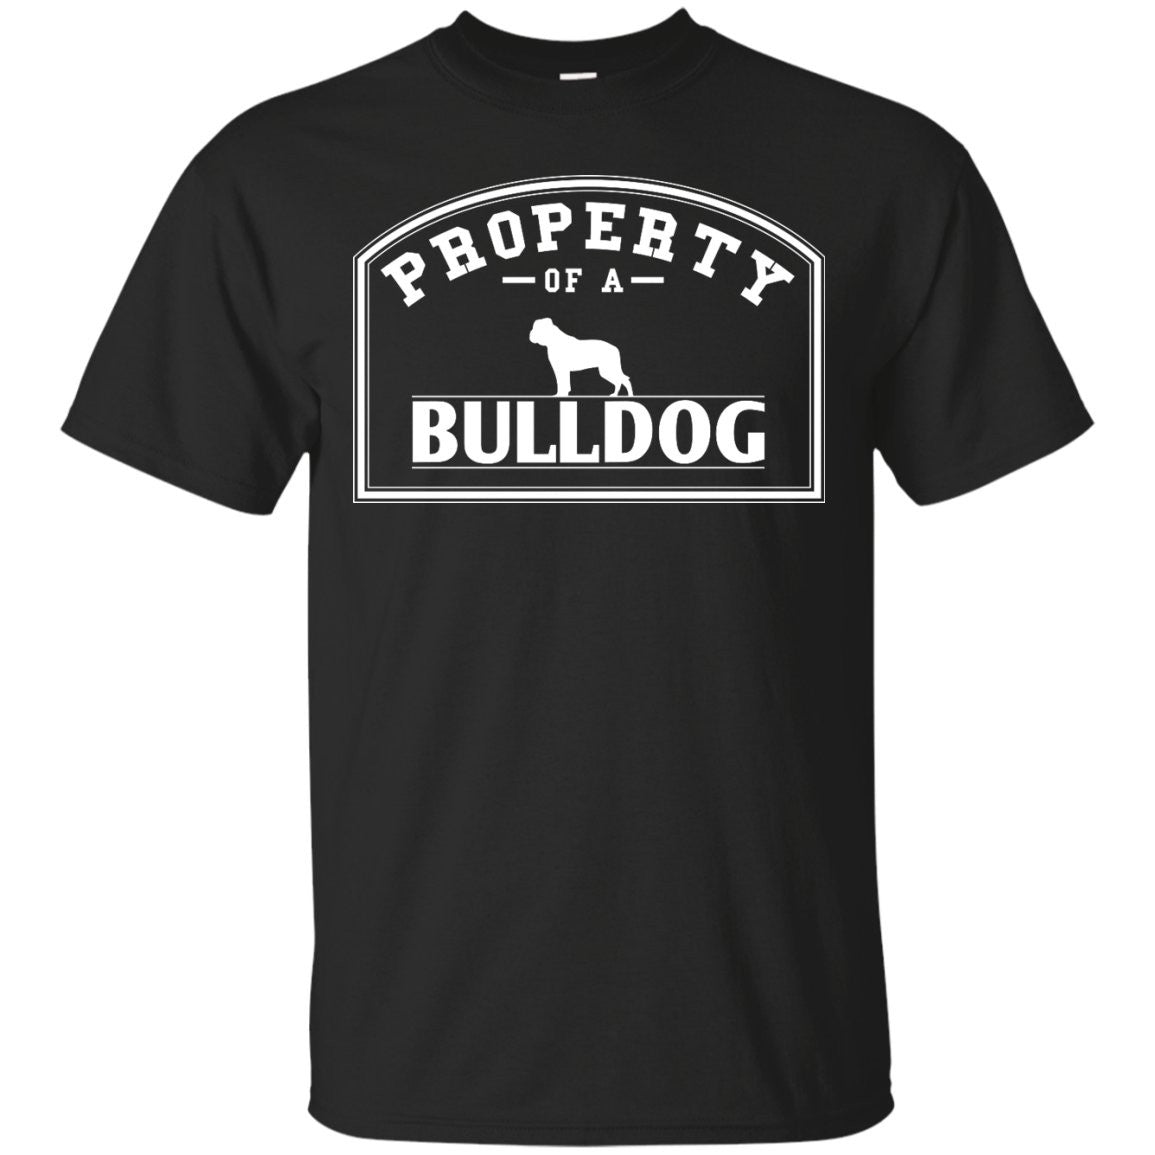 Bulldog - Property Of A Bulldog -  Custom Ultra Cotton T-Shirt